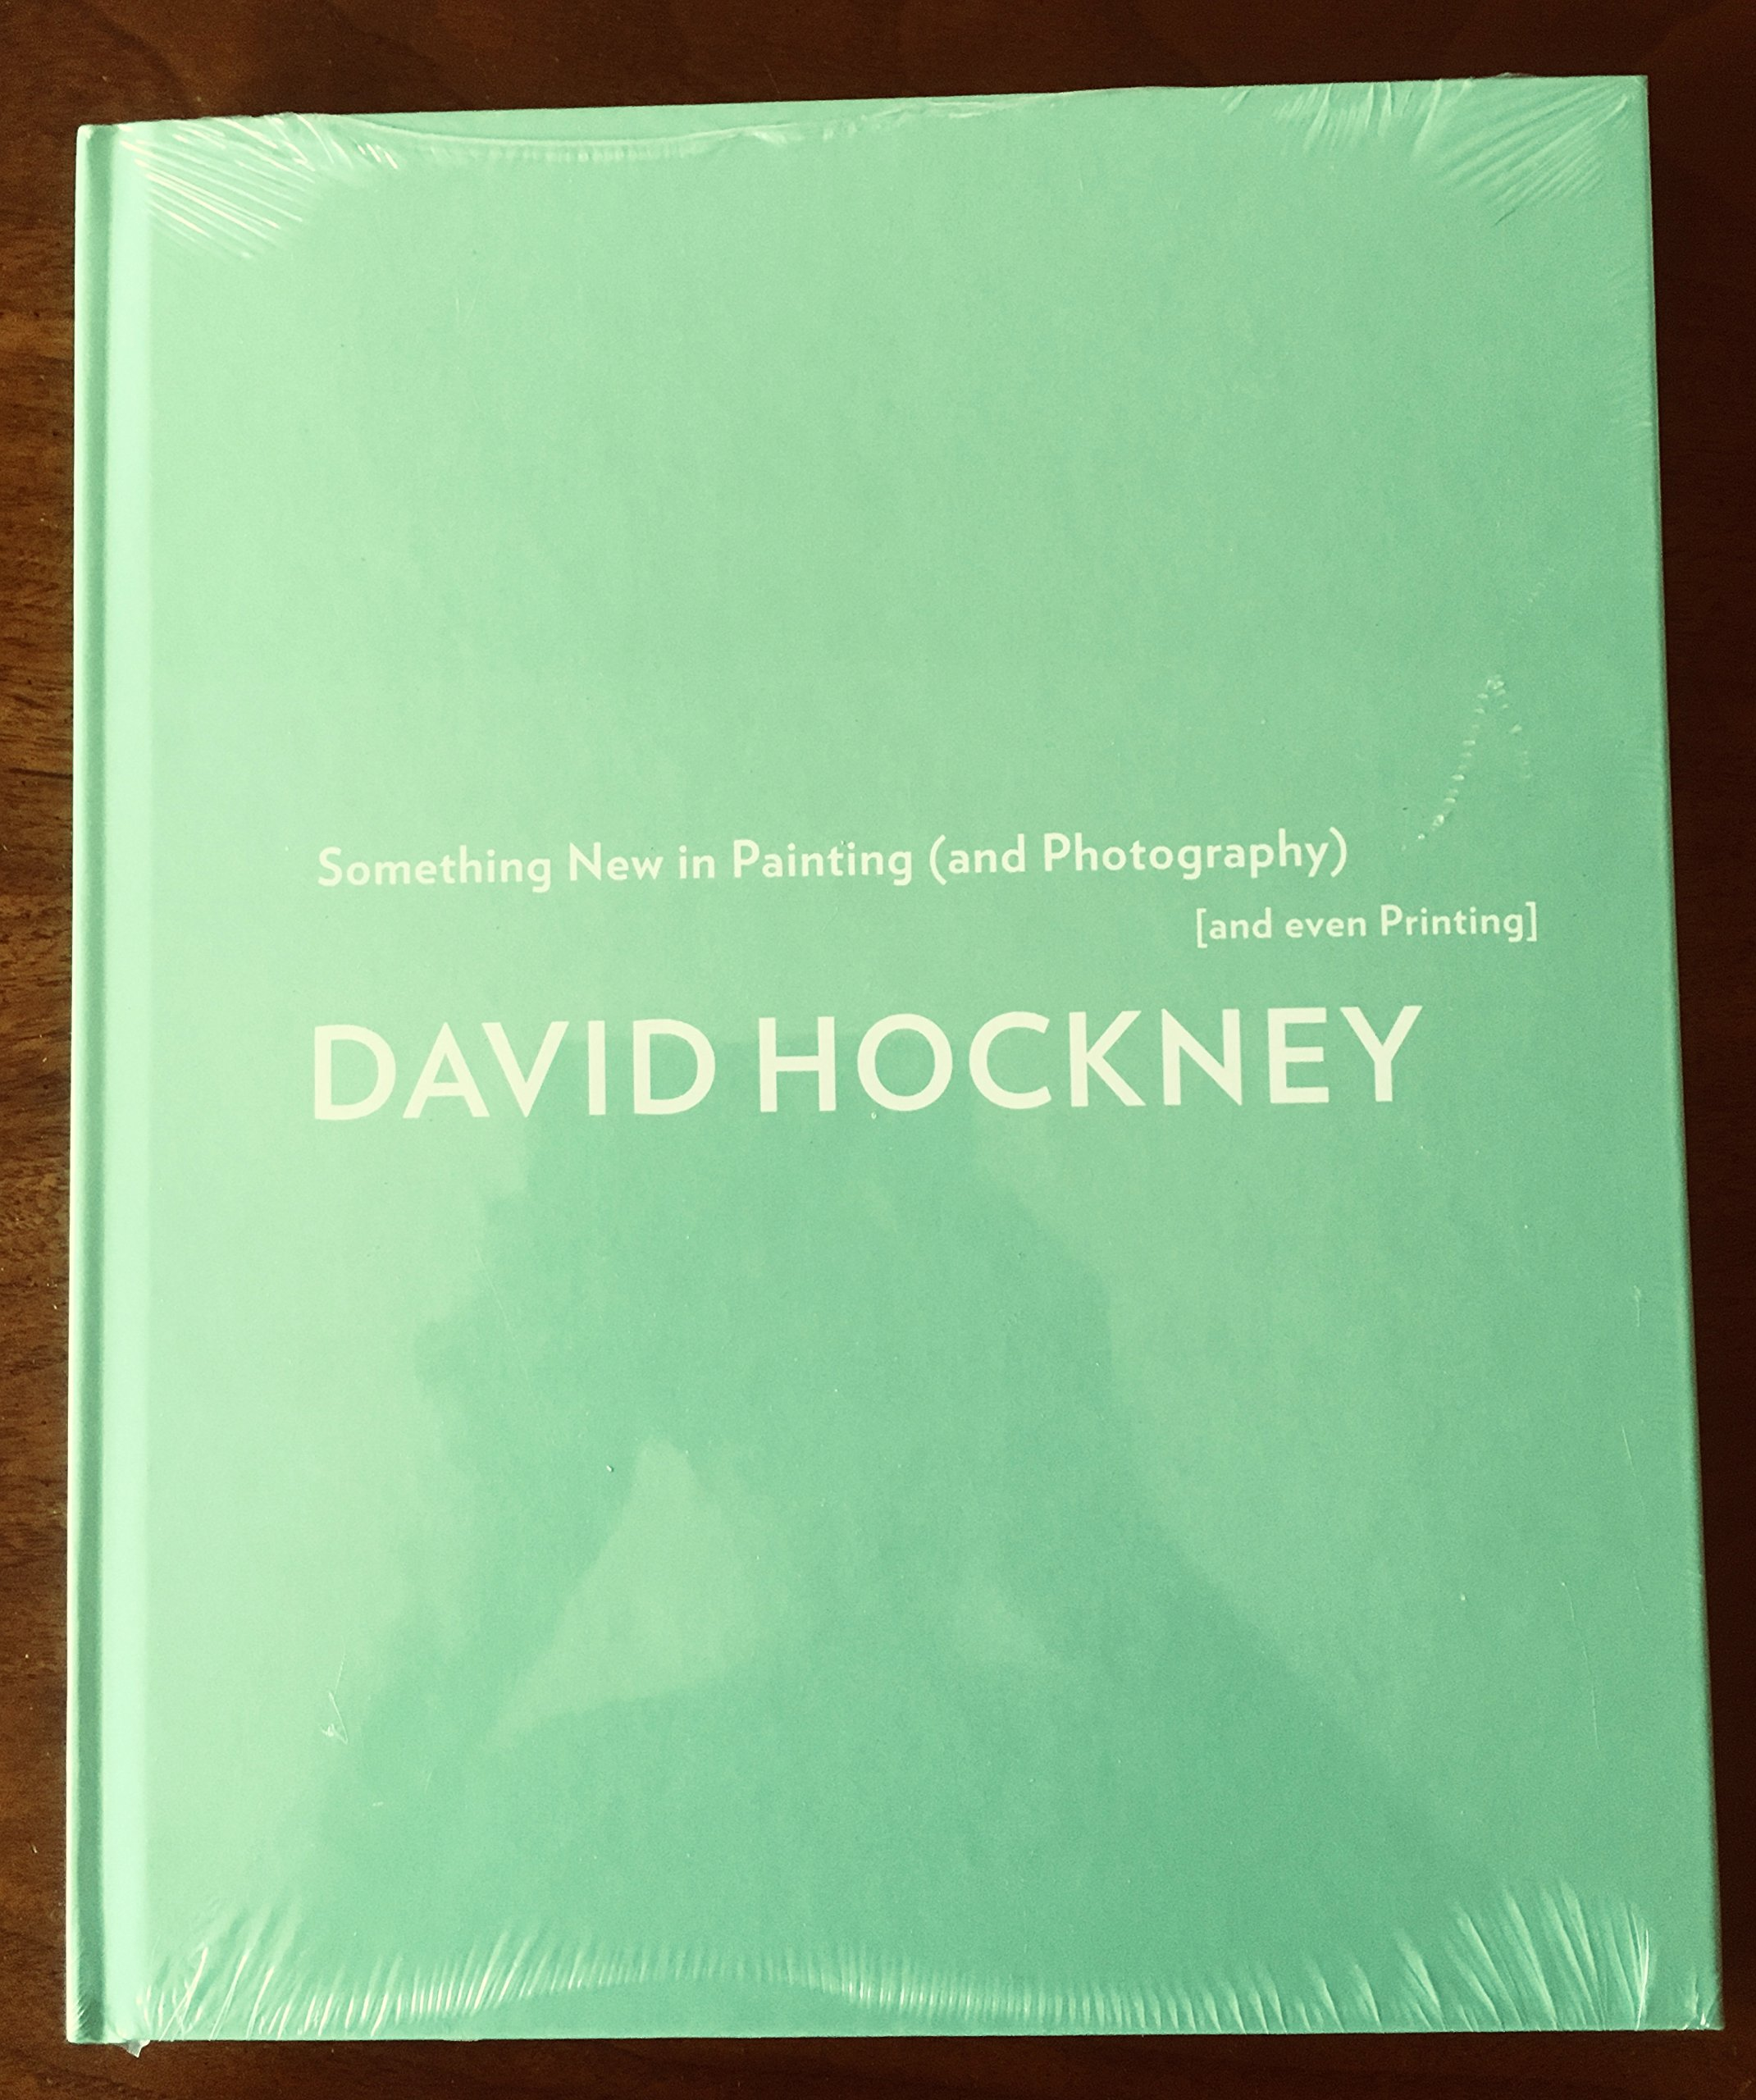 David Hockney : something new in painting (and photography) [and even printing] pdf